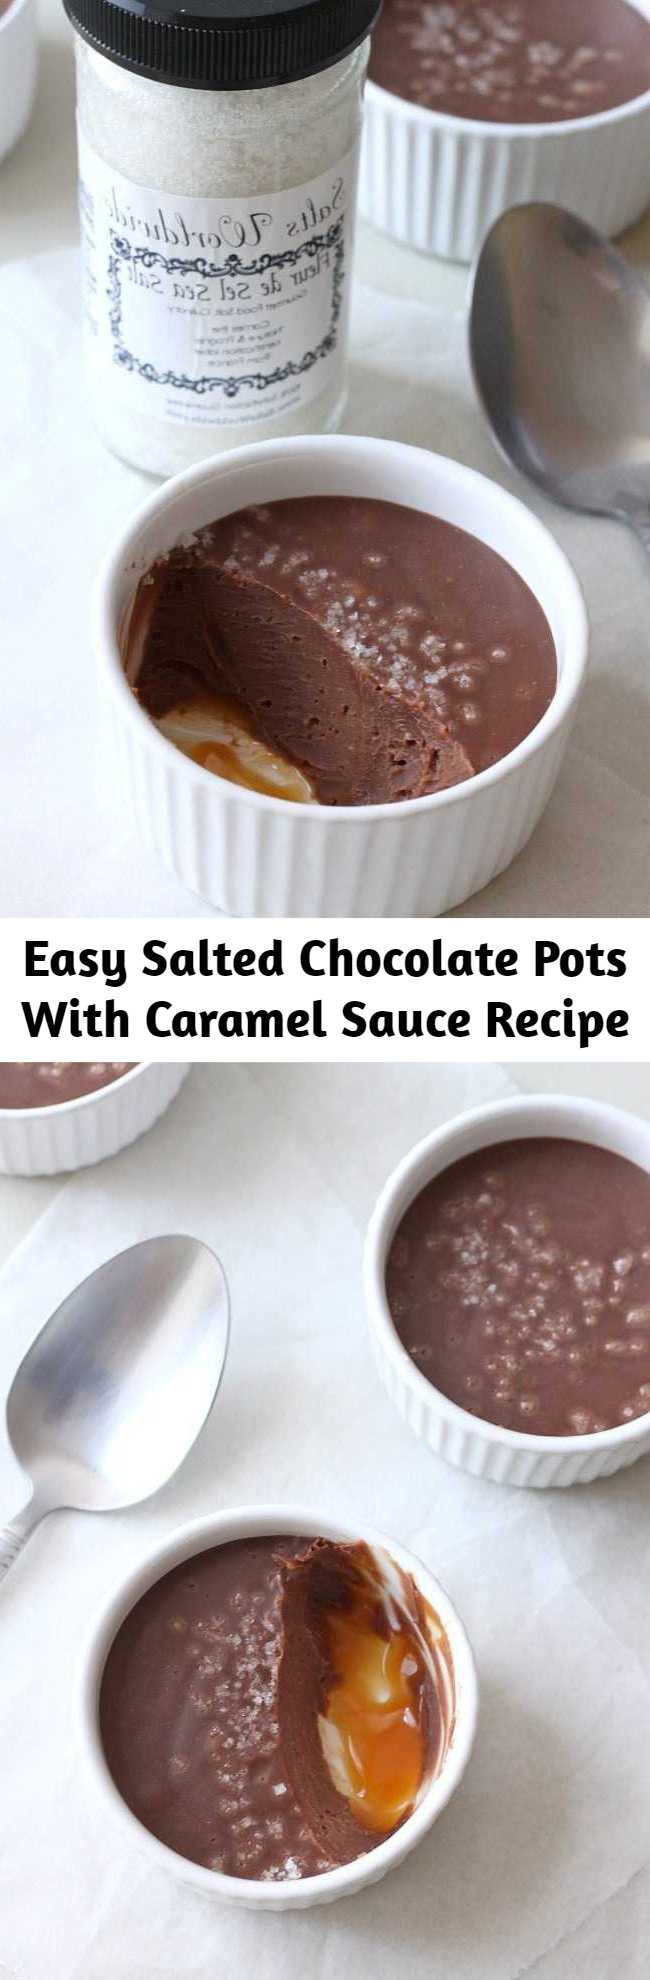 Easy Salted Chocolate Pots With Caramel Sauce Recipe - This salted chocolate pots with caramel recipe makes a delicious, no bake dessert! Easy make ahead instructions for even easier entertaining!